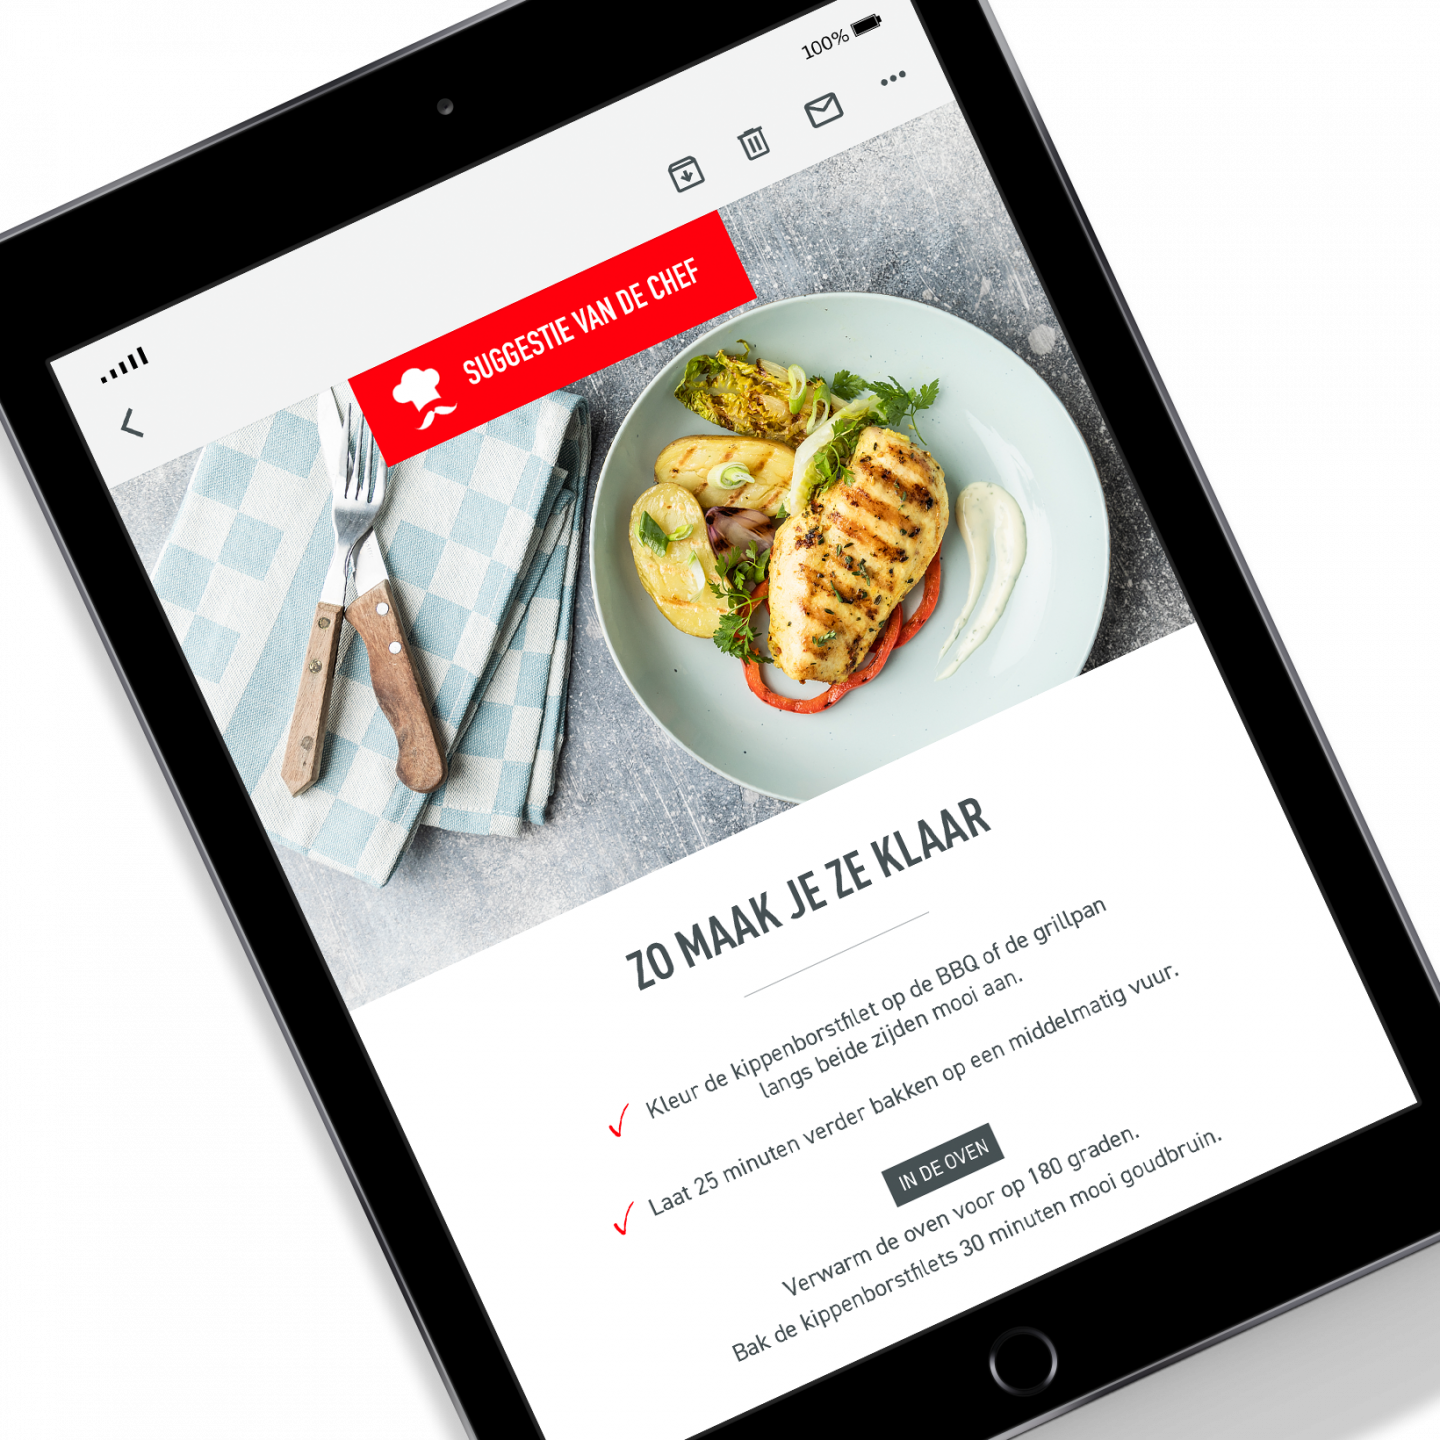 Suggestie van de chef mockup op een Apple iPad